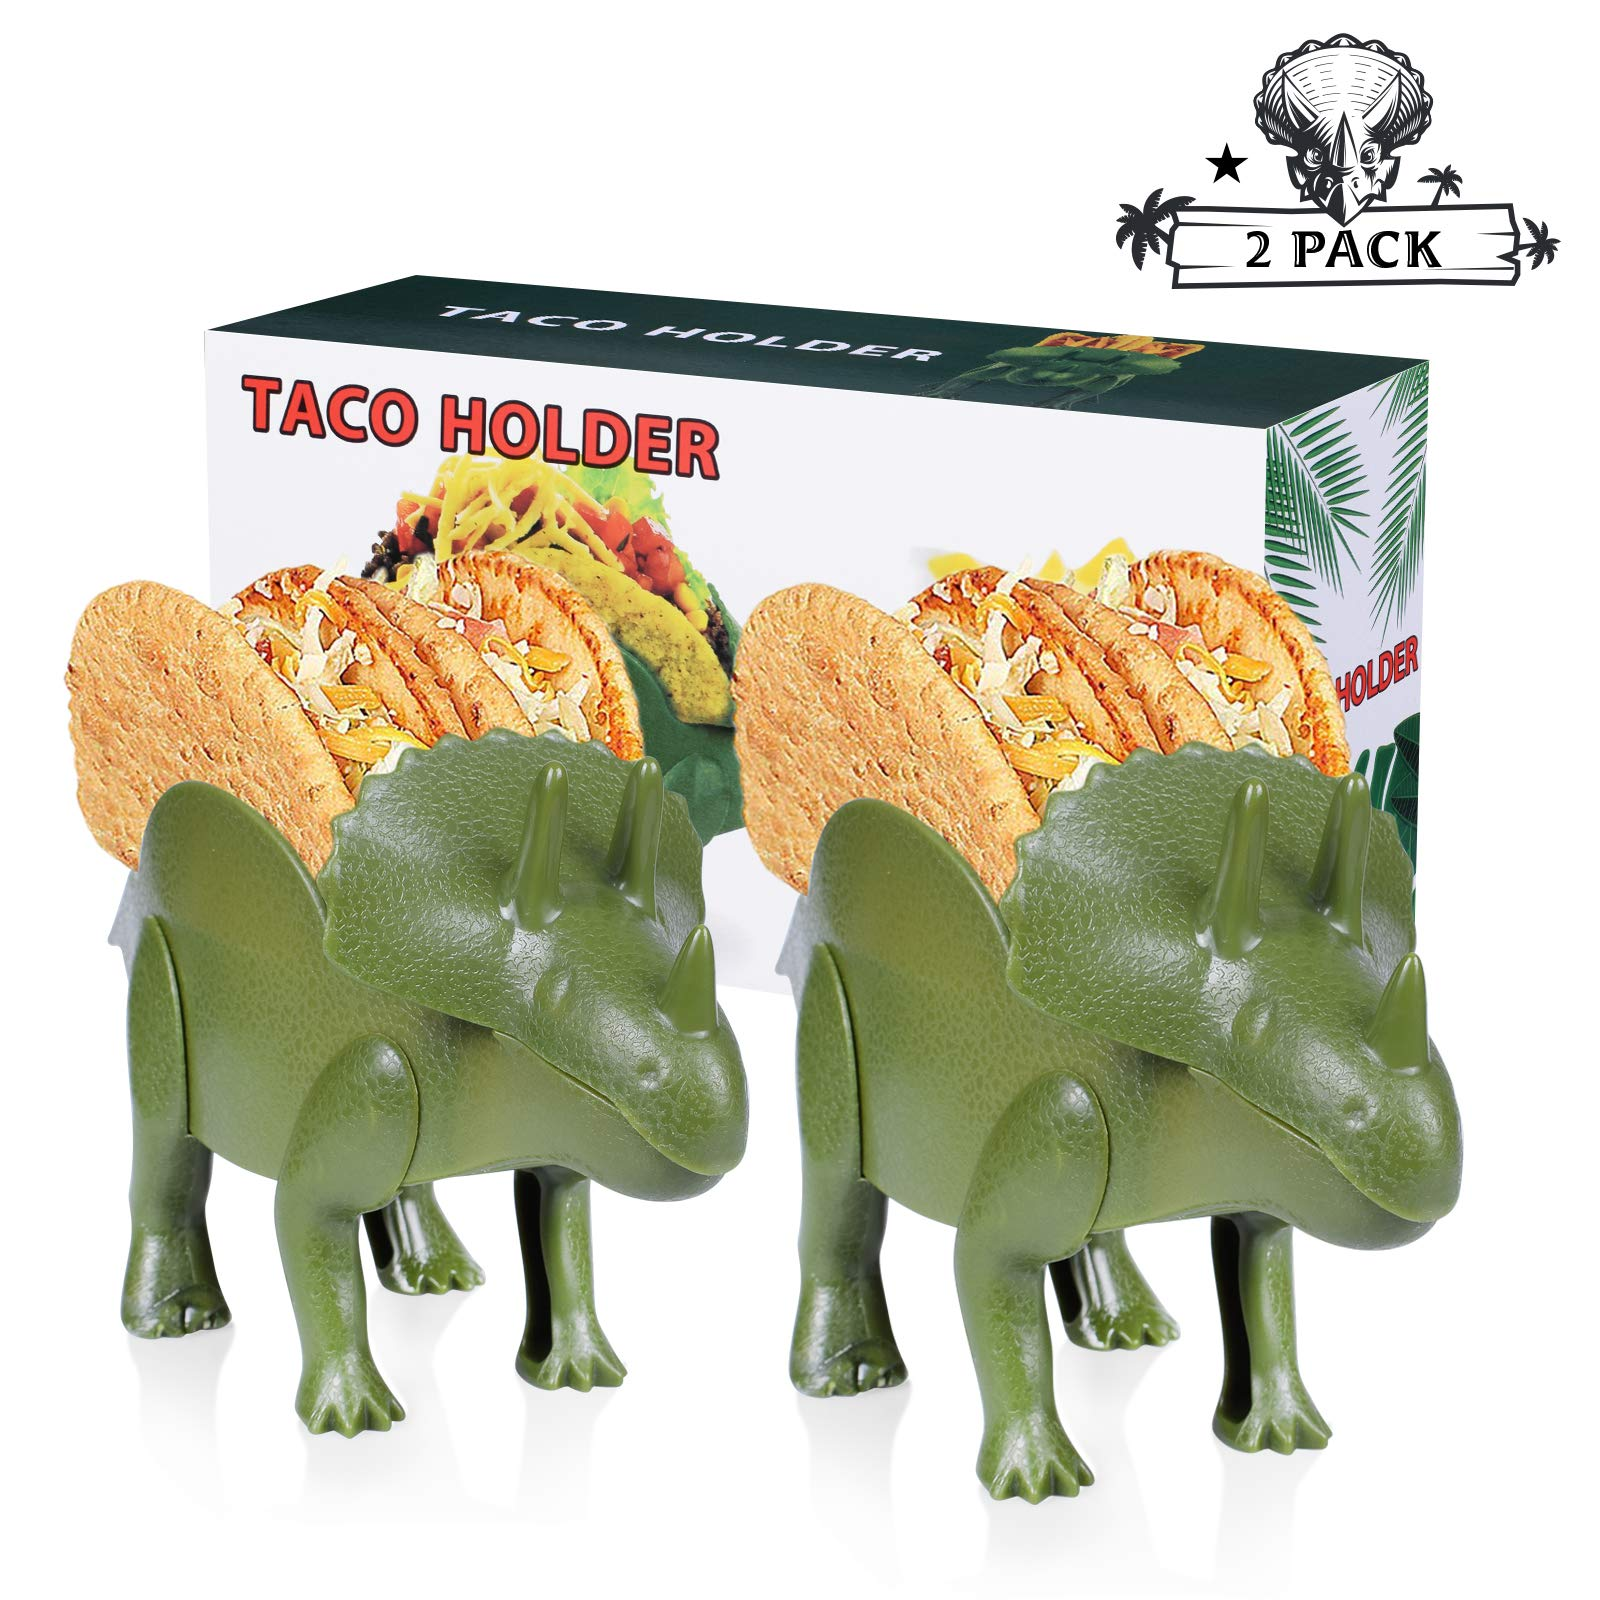 Triceratops Taco Holder Dinosaur Taco Holder Set Stand Shell Double-Slotted Kids Dino Taco Holders 10 x 5.2